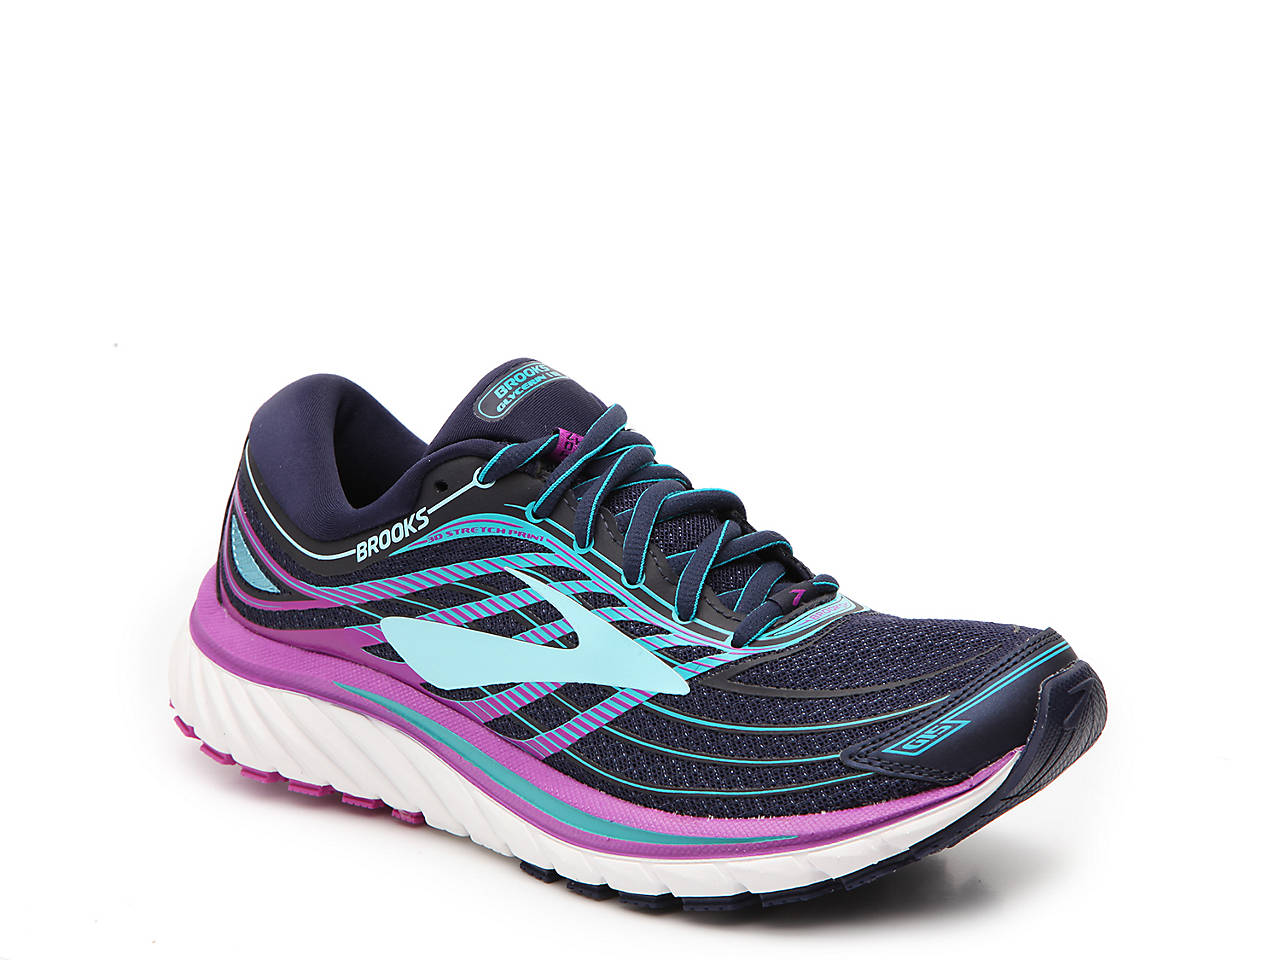 reputable site ff64f 409b9 Glycerin 15 Performance Running Shoe - Women's